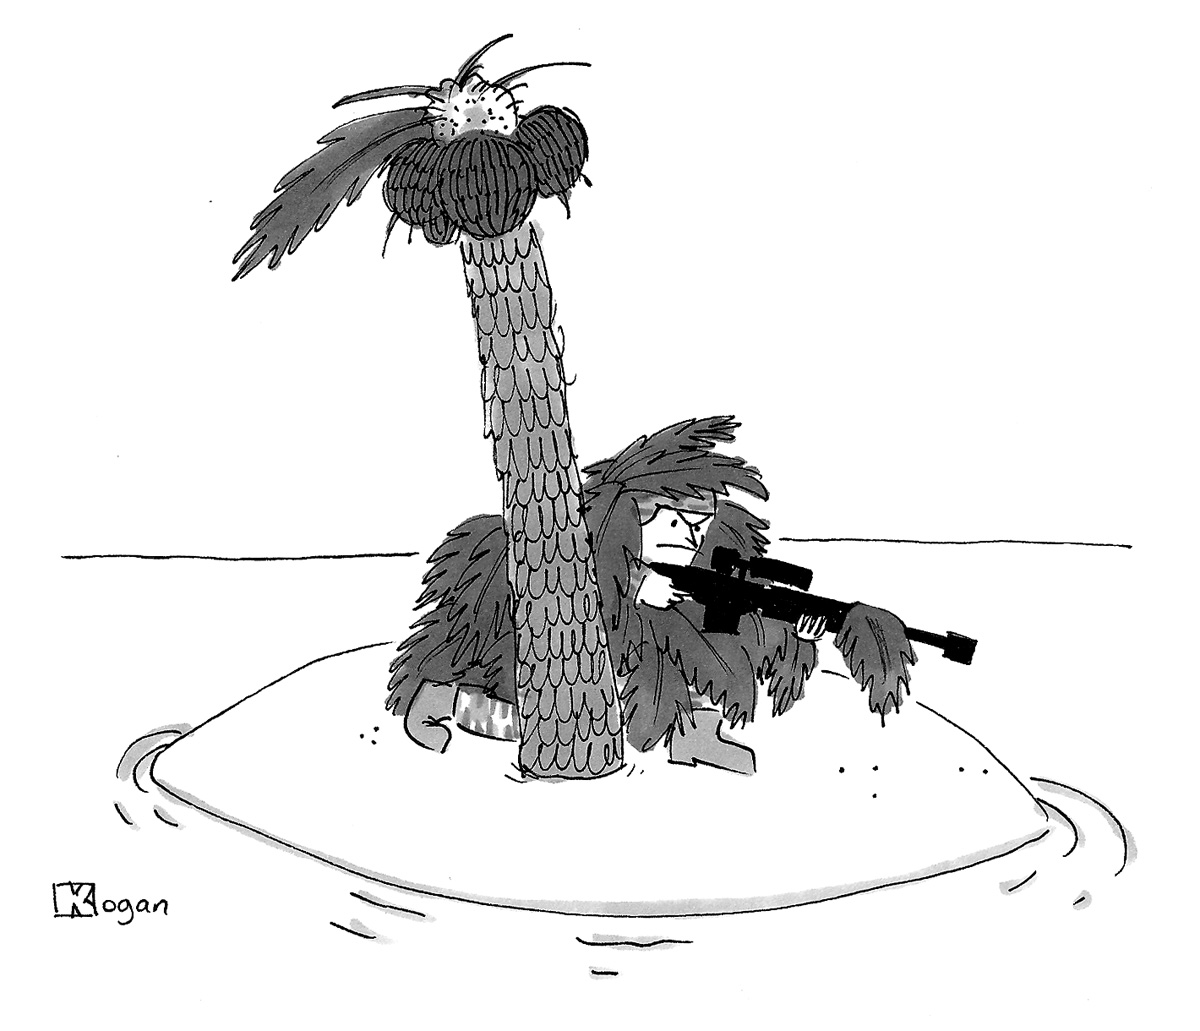 (A sniper uses leaves of a palm tree for camouflage on a desert island.)